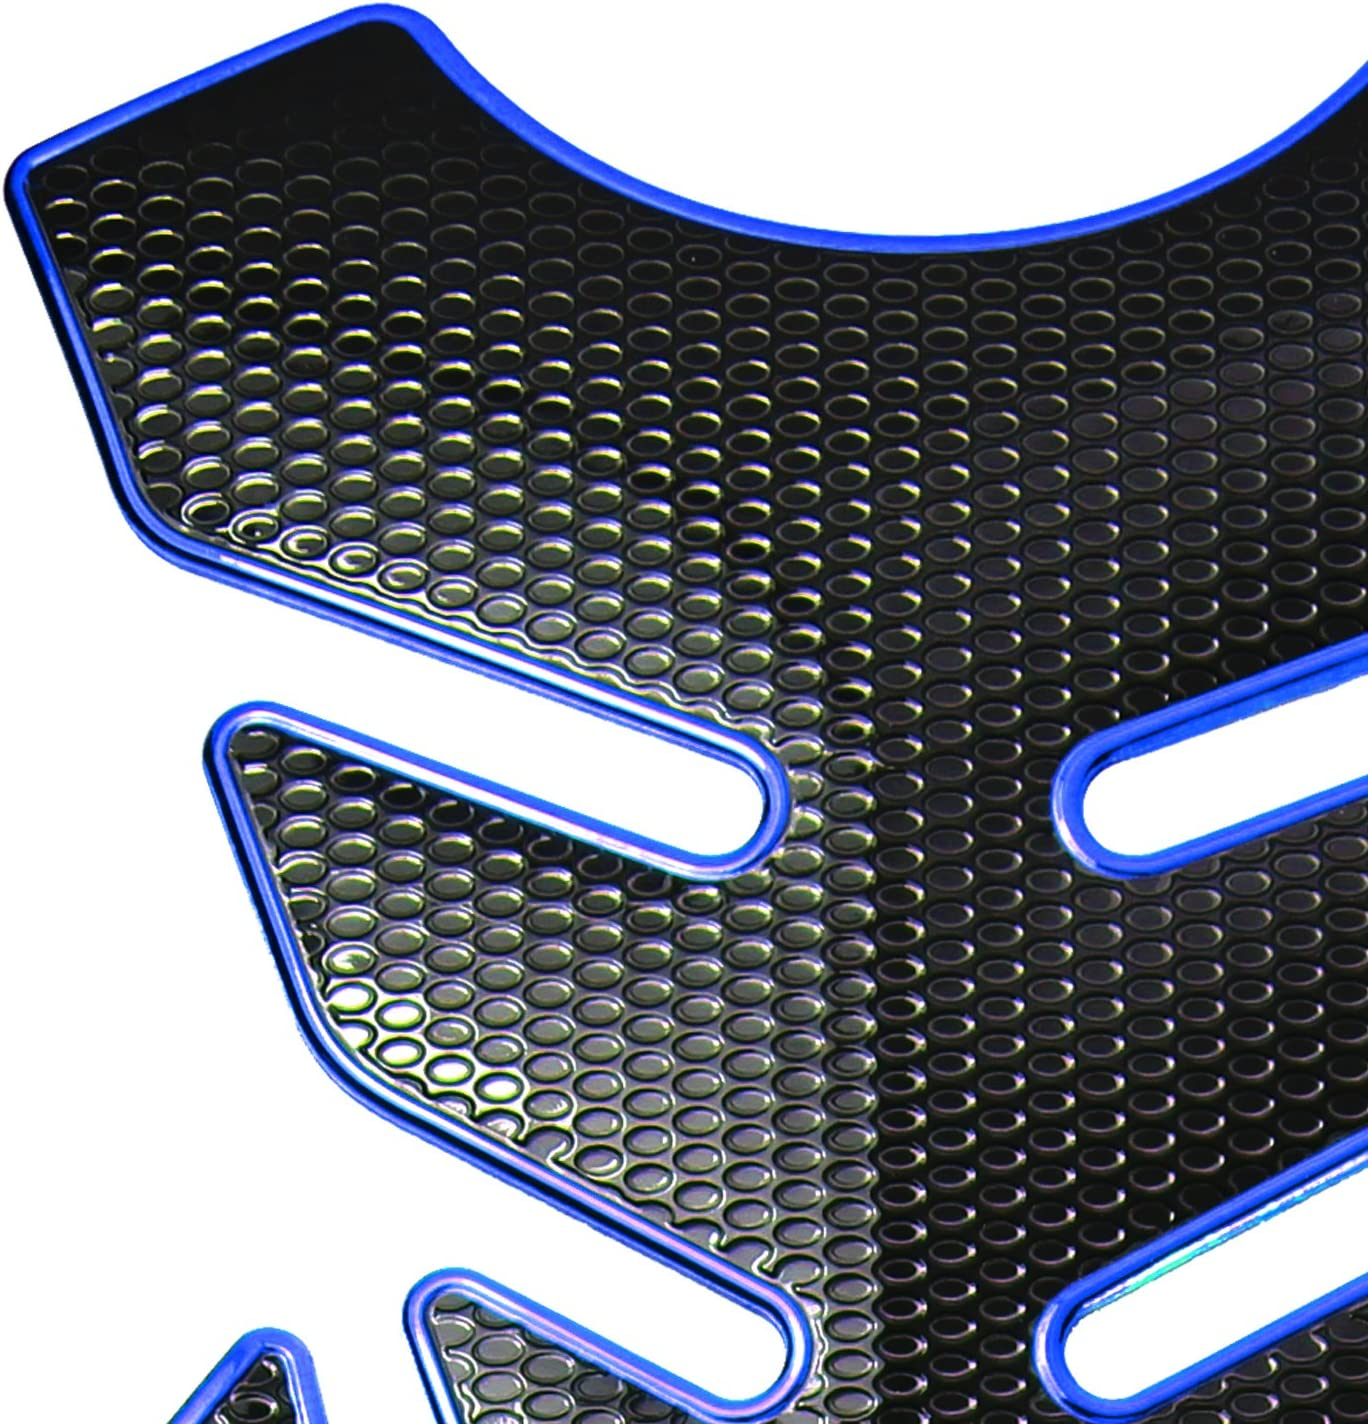 ExtremePowersports 3D 4PCs Customize Fuel//Gas Tank//Side Knee Pad Decal//Sticker Protector Perforated Black+Chrome Silver